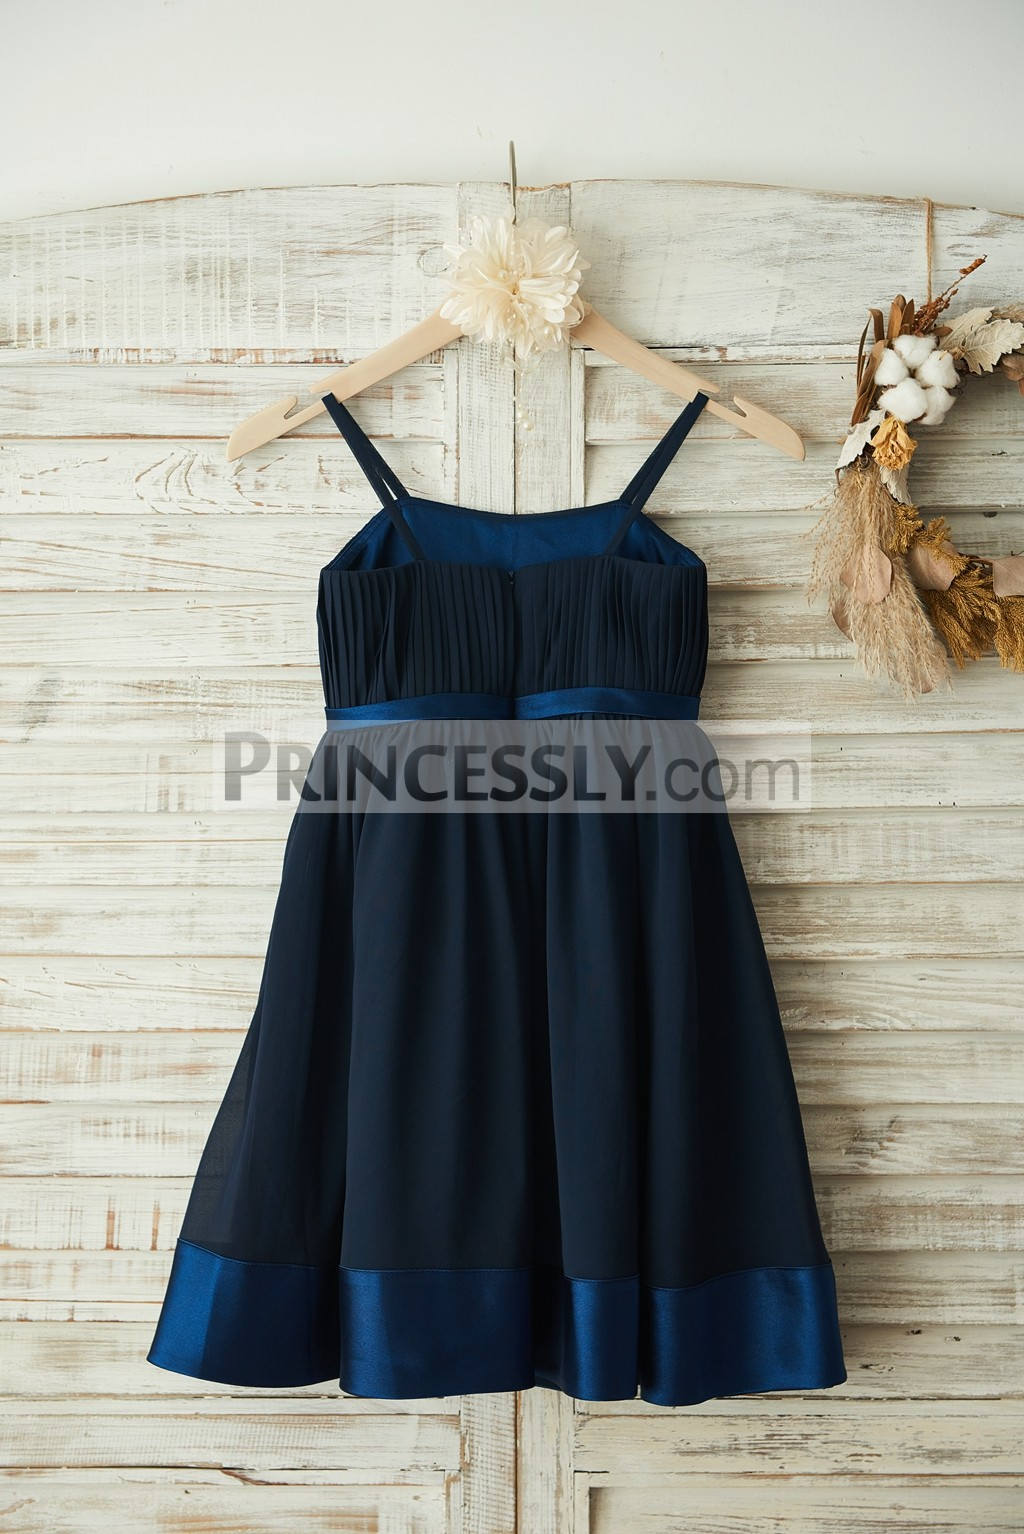 Boho Spaghetti Straps Navy Blue Chiffon Satin Wedding